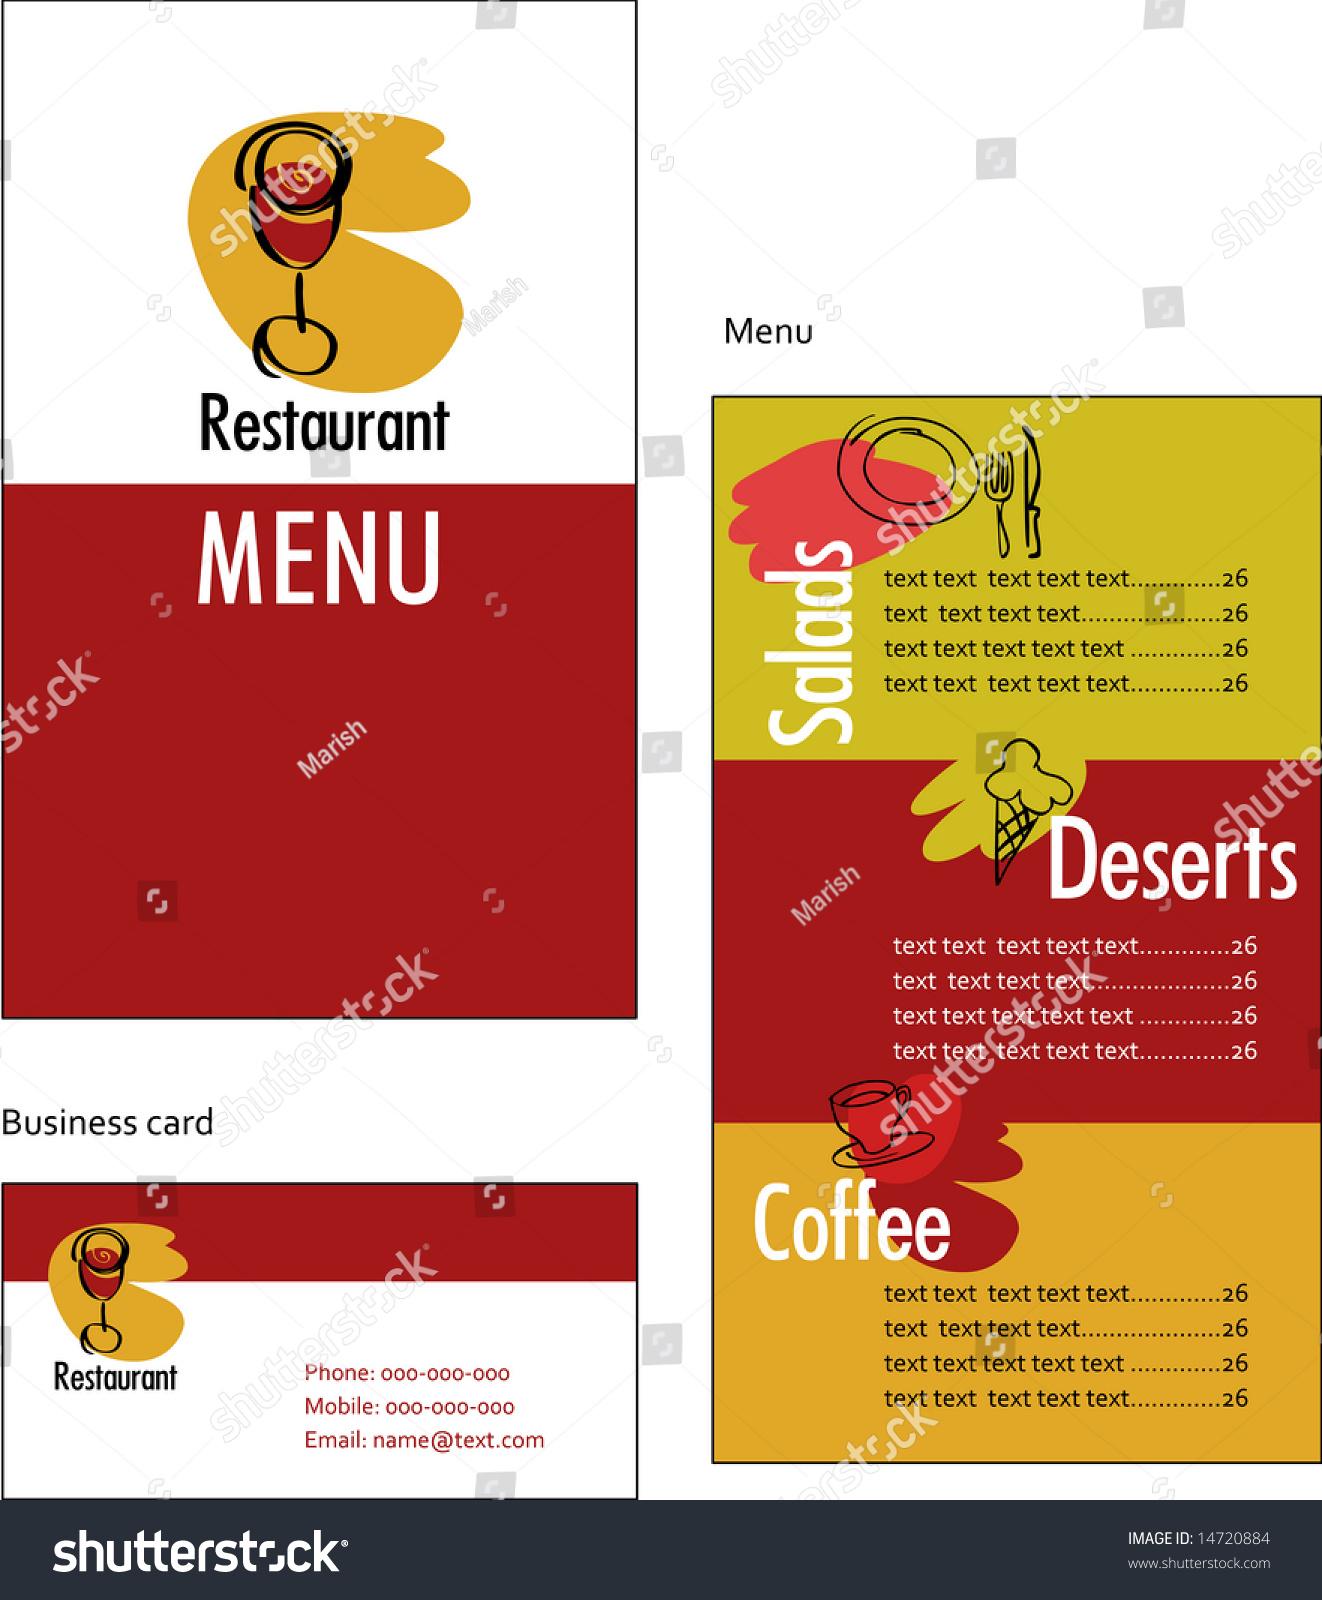 sandwich shop menu template - template designs menu business card restaurant stock